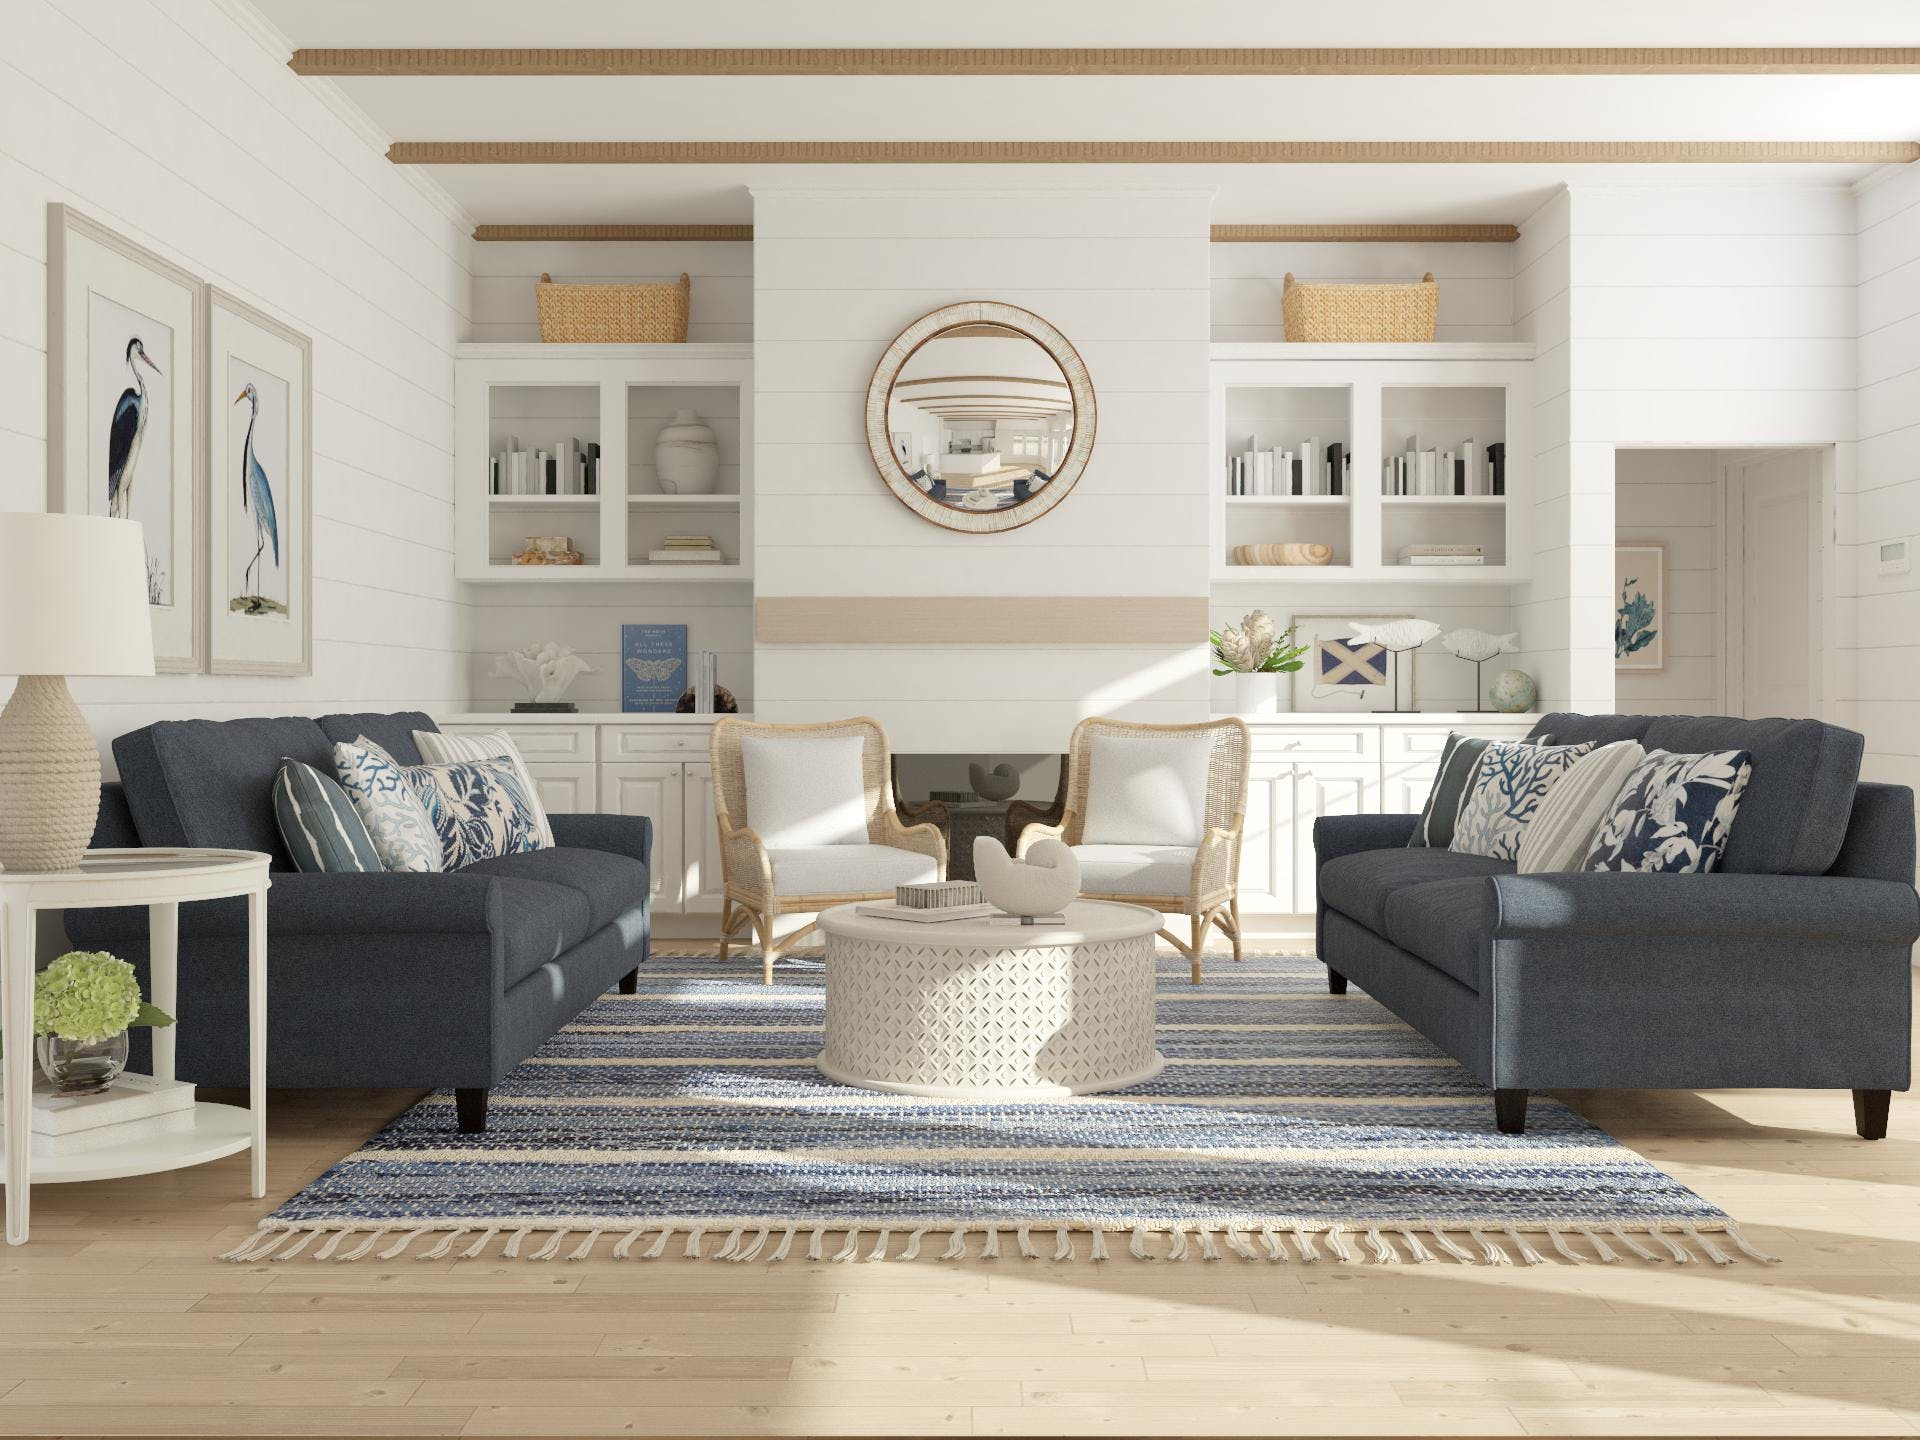 Coastal style blue and white living room